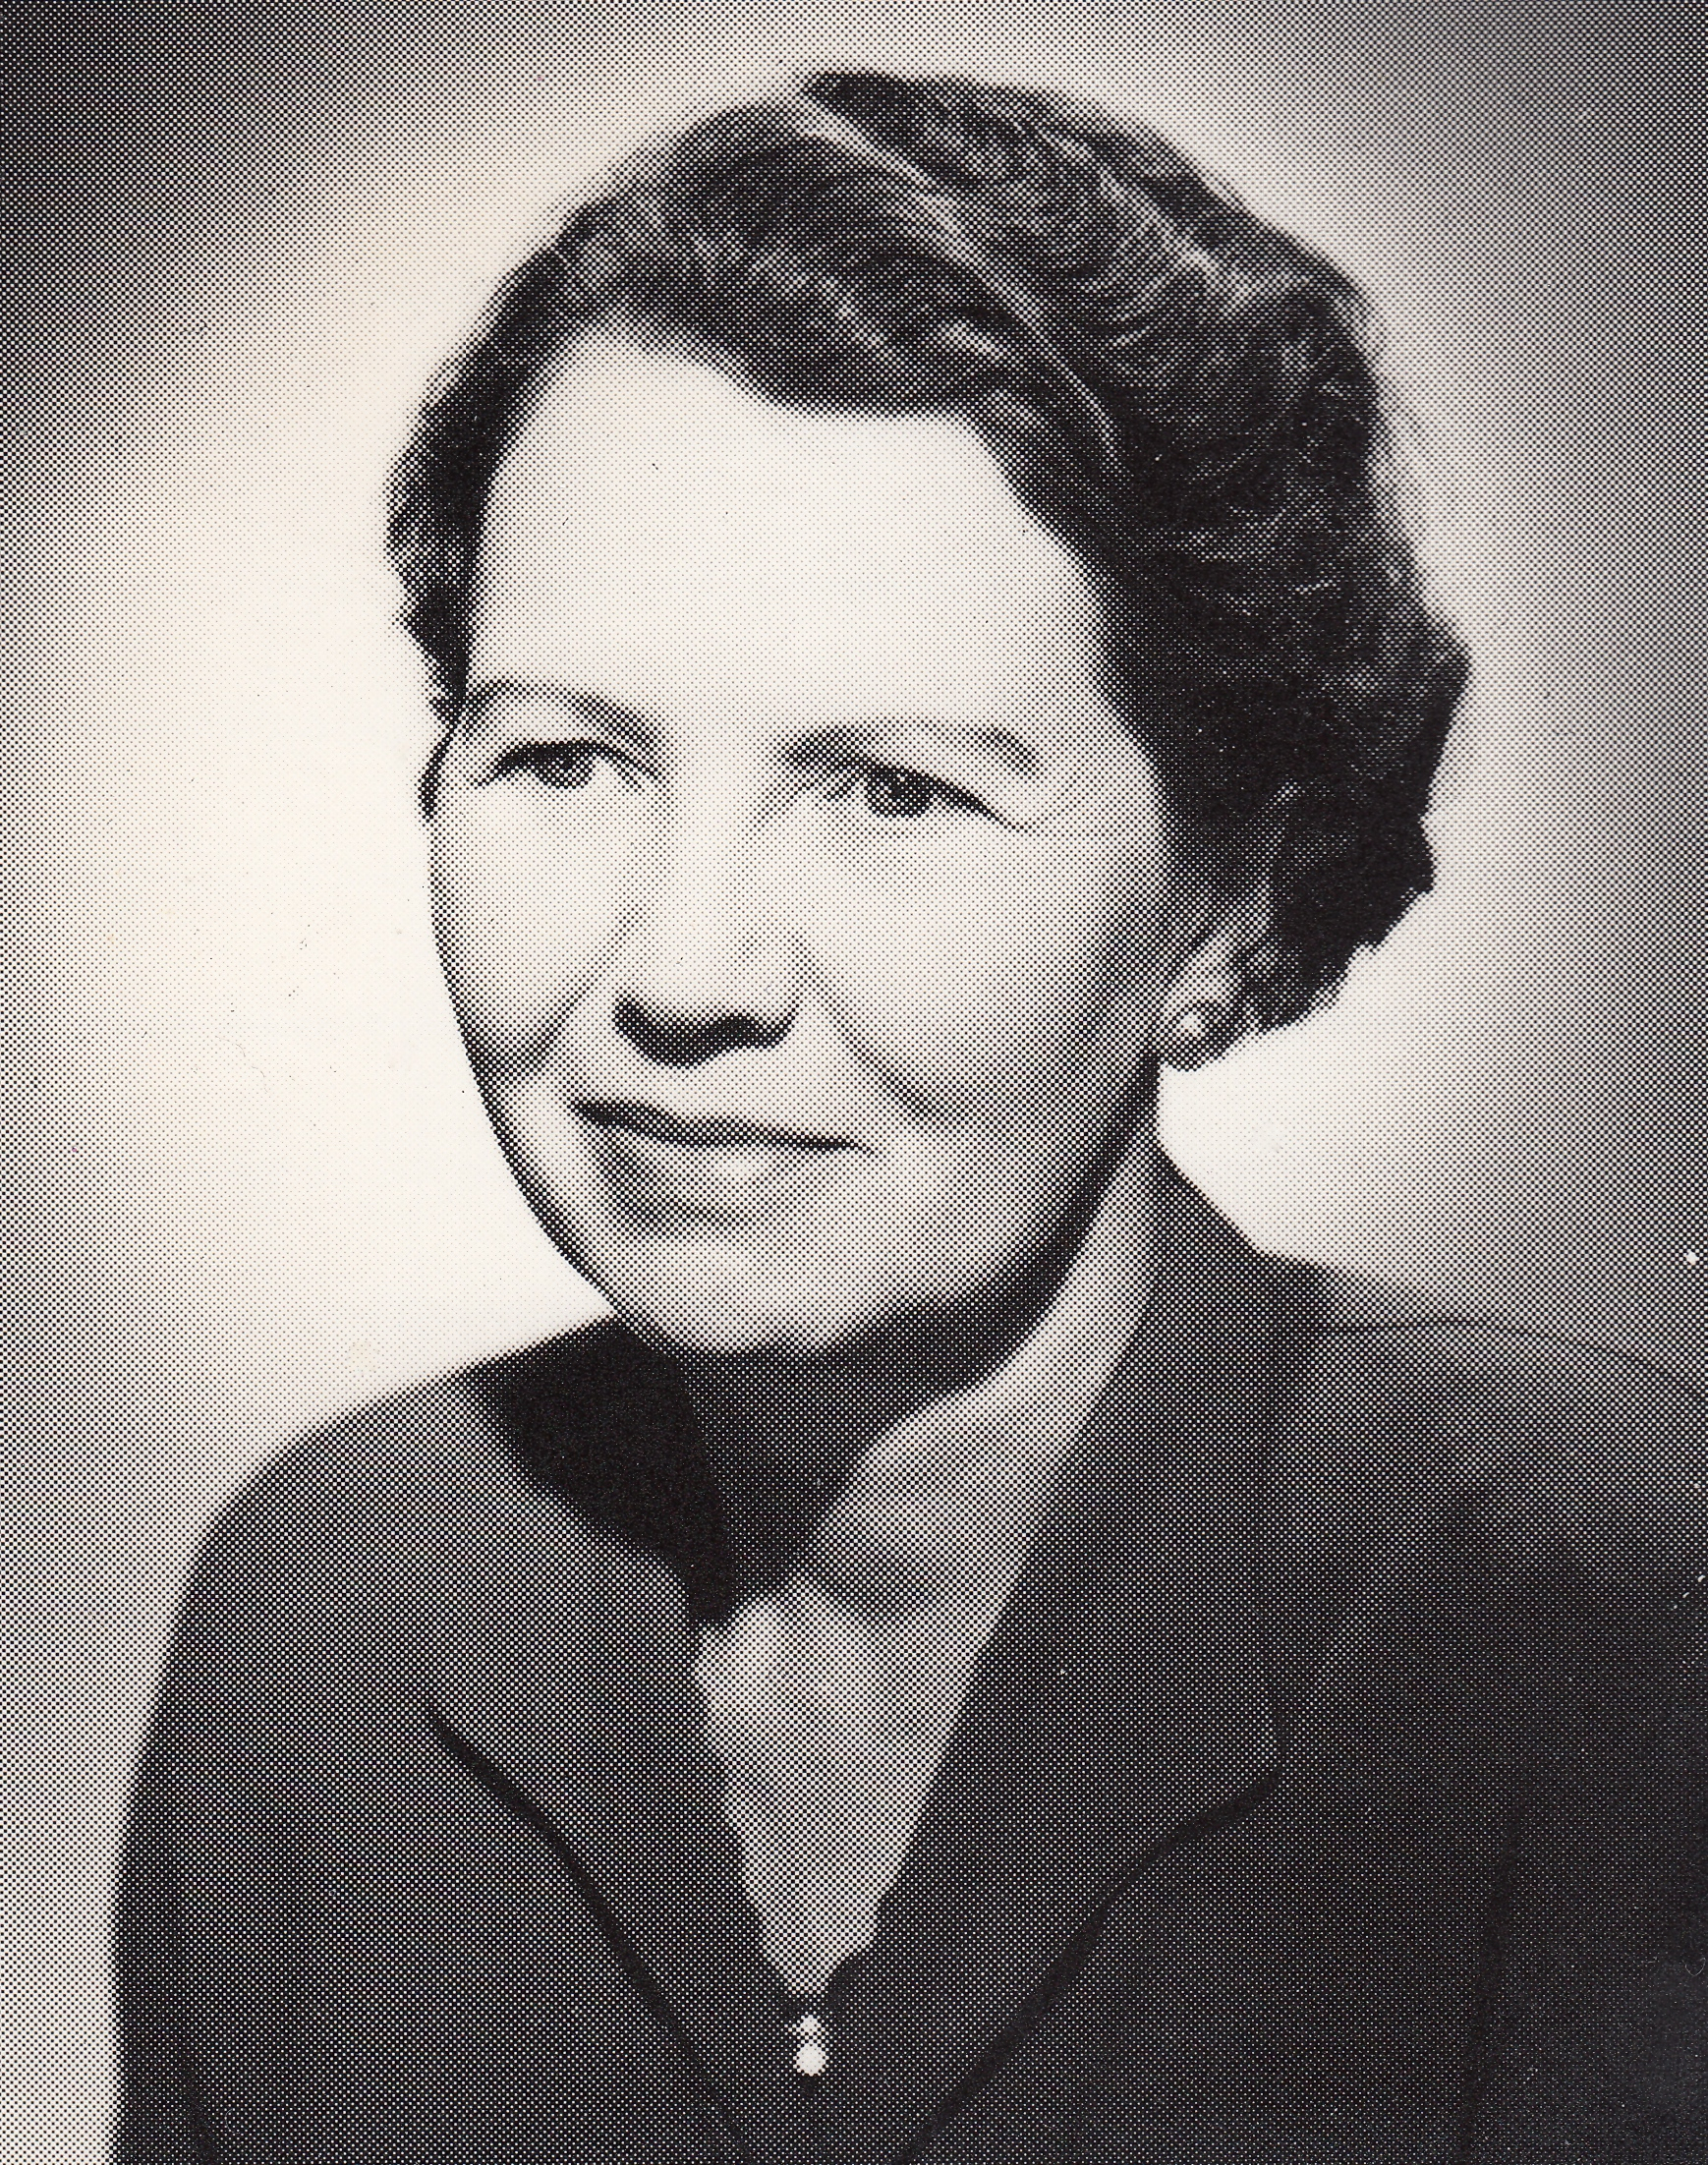 Image of Helen M. Roberts from Wikidata